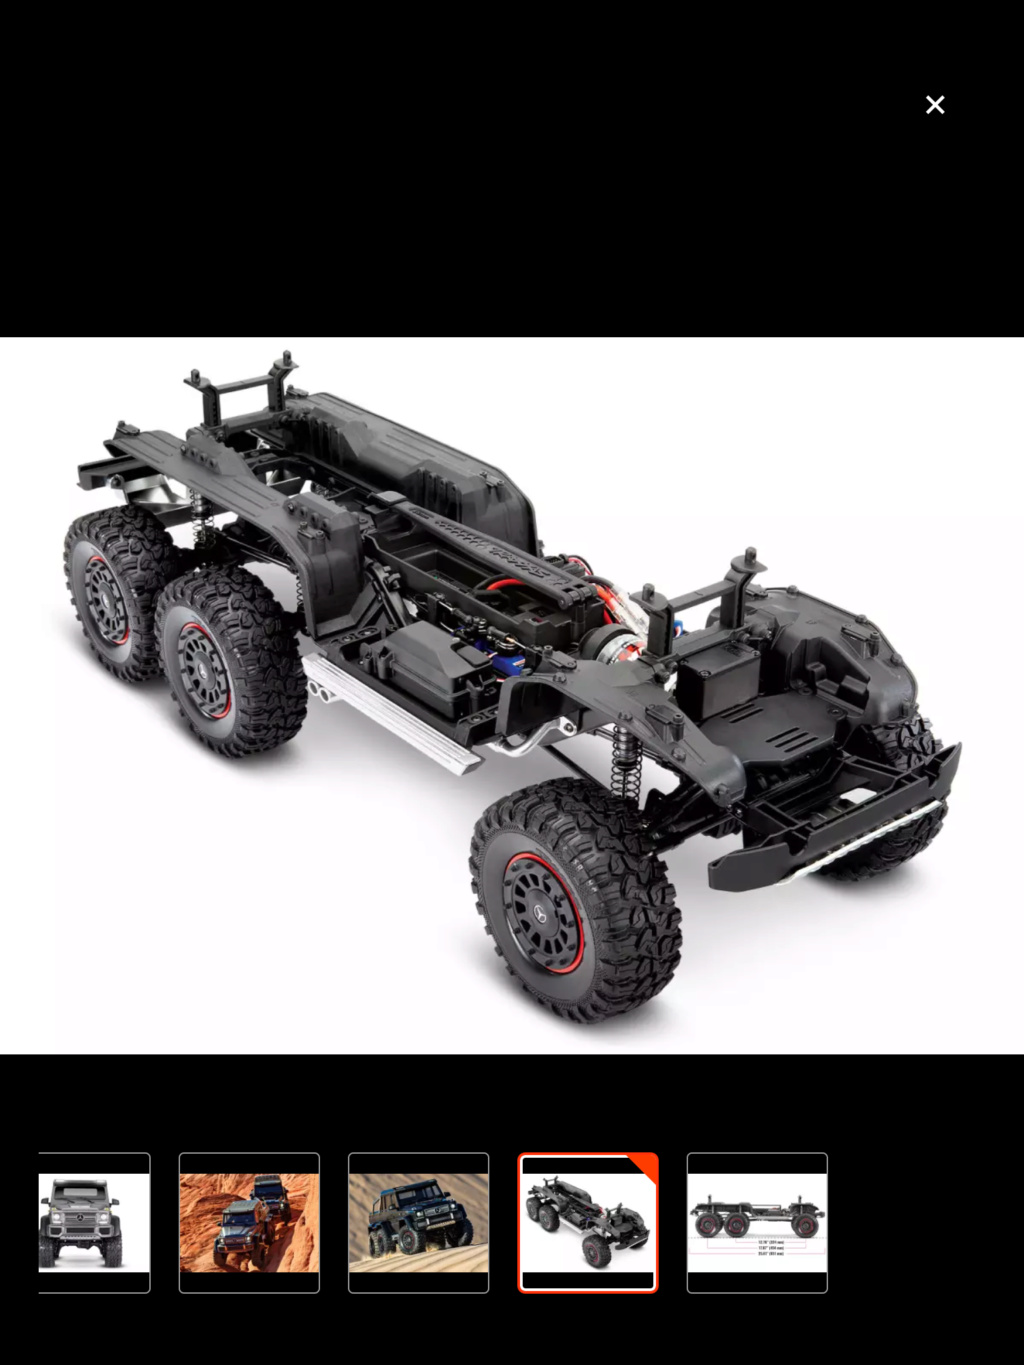 Traxxas TRX-4 Land Rover Defender D110 Scale : Oh le beau joujou ! - Page 10 04bf1710